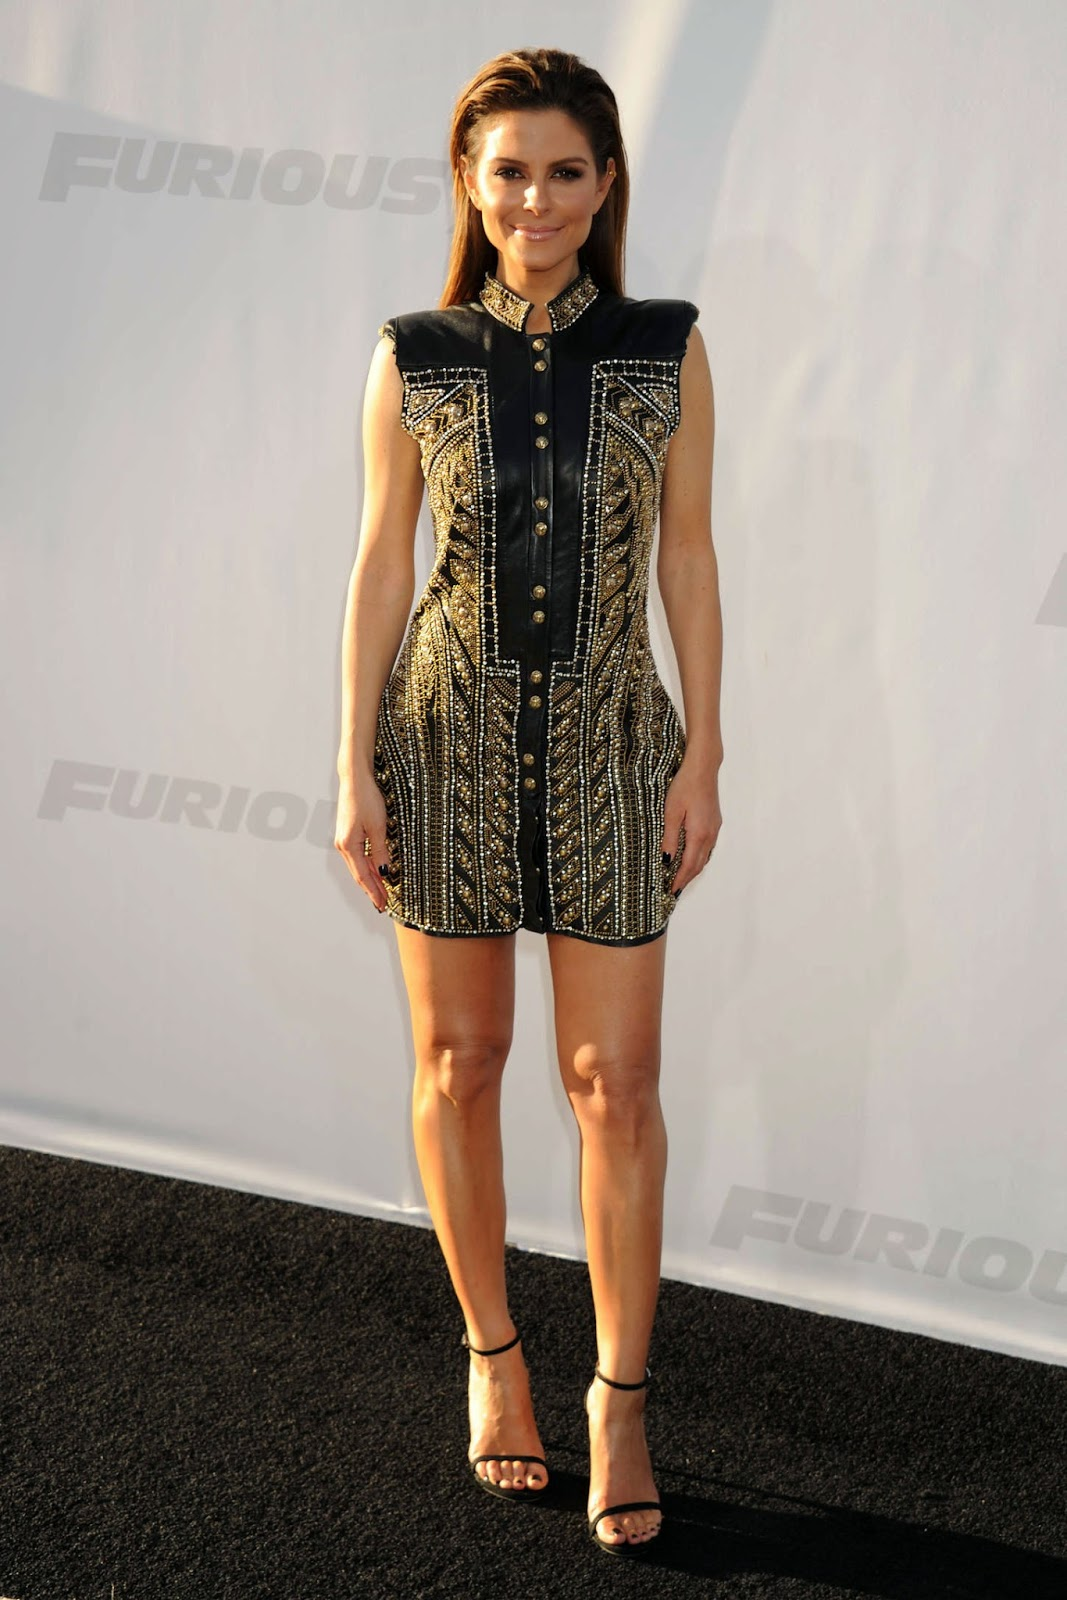 Maria Menounos in an embellished mini dress at the 'Furious 7' premiere in LA